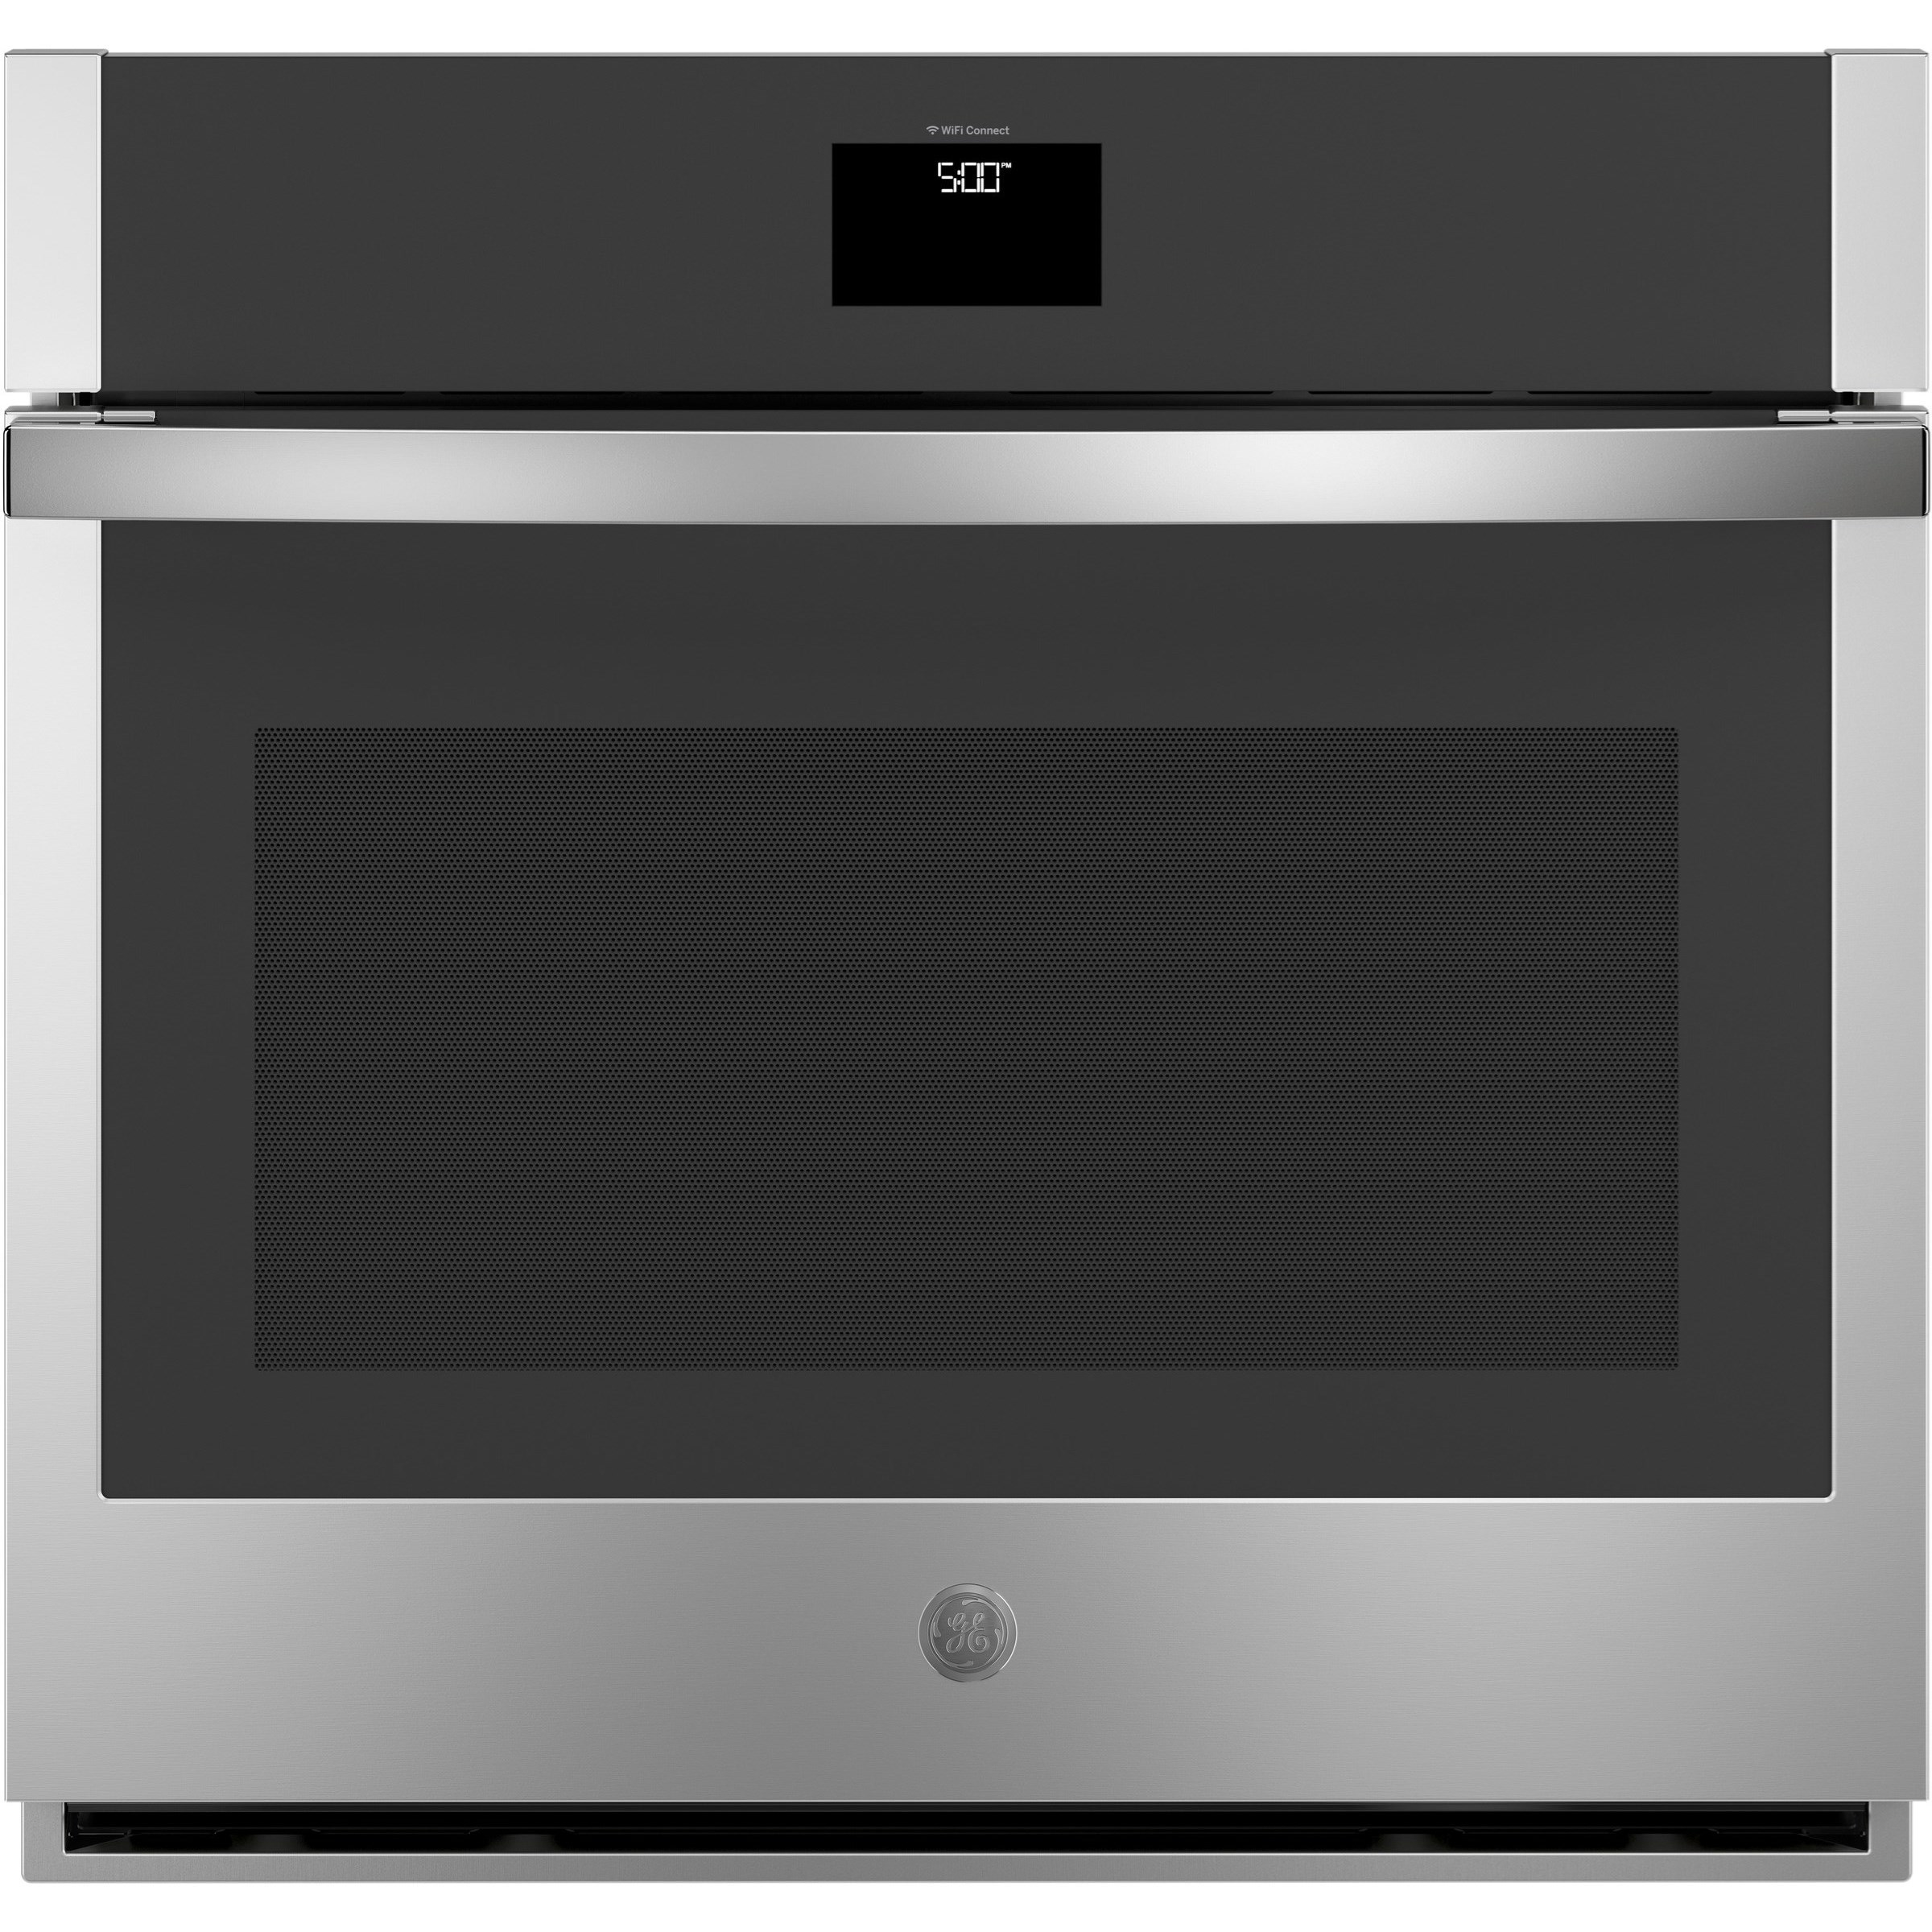 """Electric Wall Oven 5 Cu. Ft. 30"""" Smart Built-In Convection Oven by GE Appliances at Furniture and ApplianceMart"""